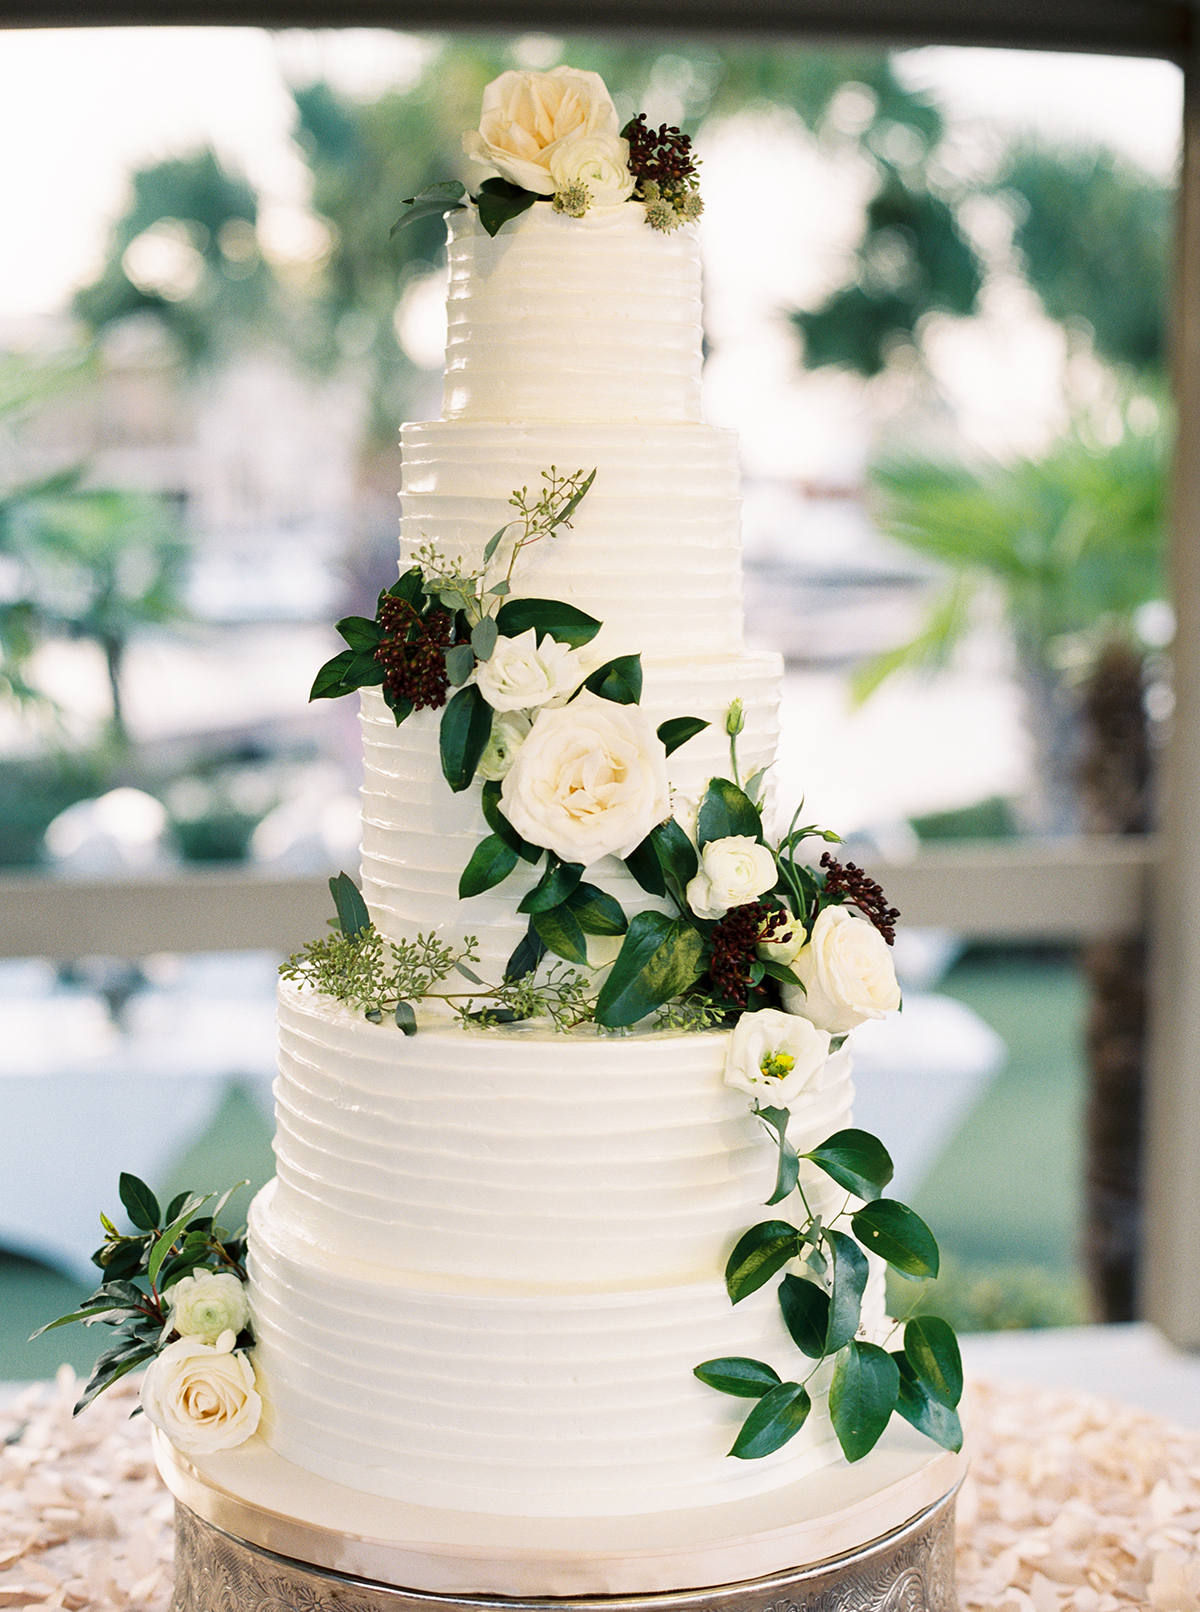 Wedding Cake With Cascading Flowers And Greenery